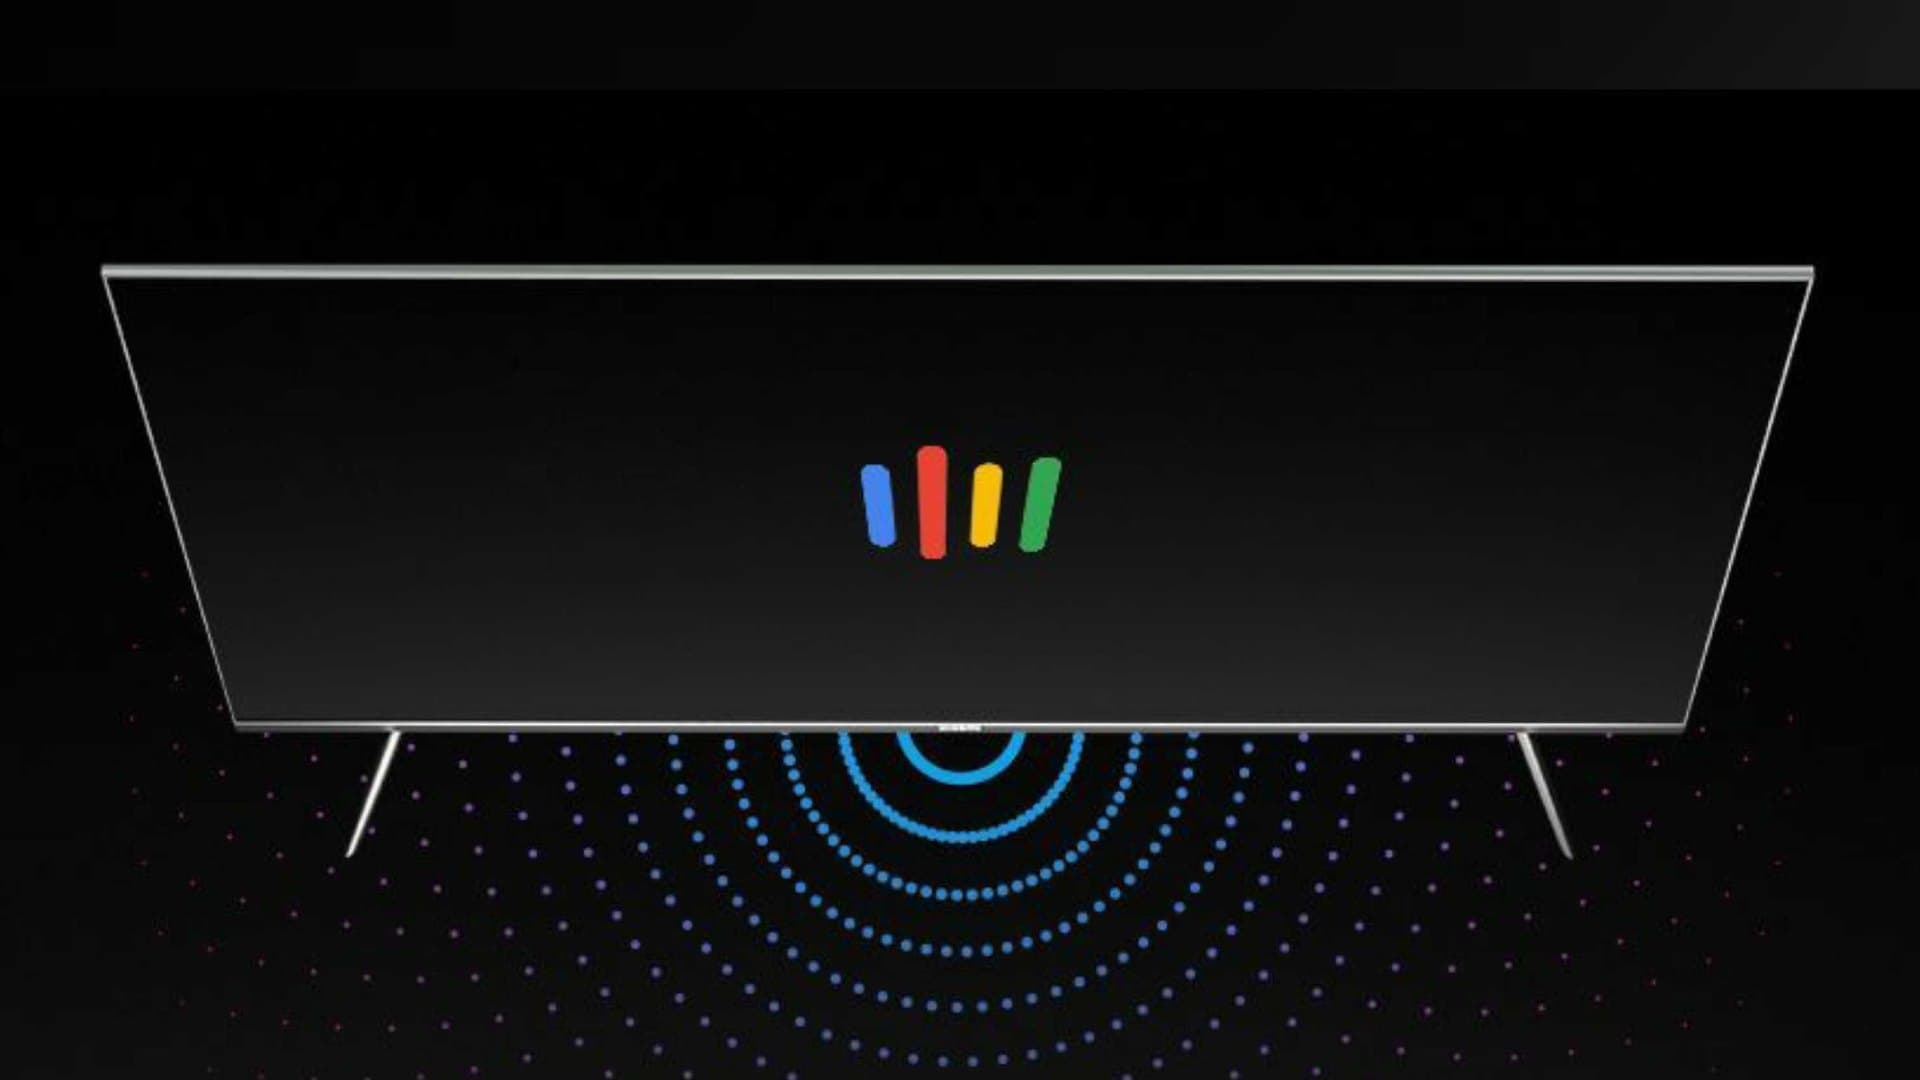 The Xiaomi Mi TV 5X is expected to have a 55-inch screen. Image: Xiaomi